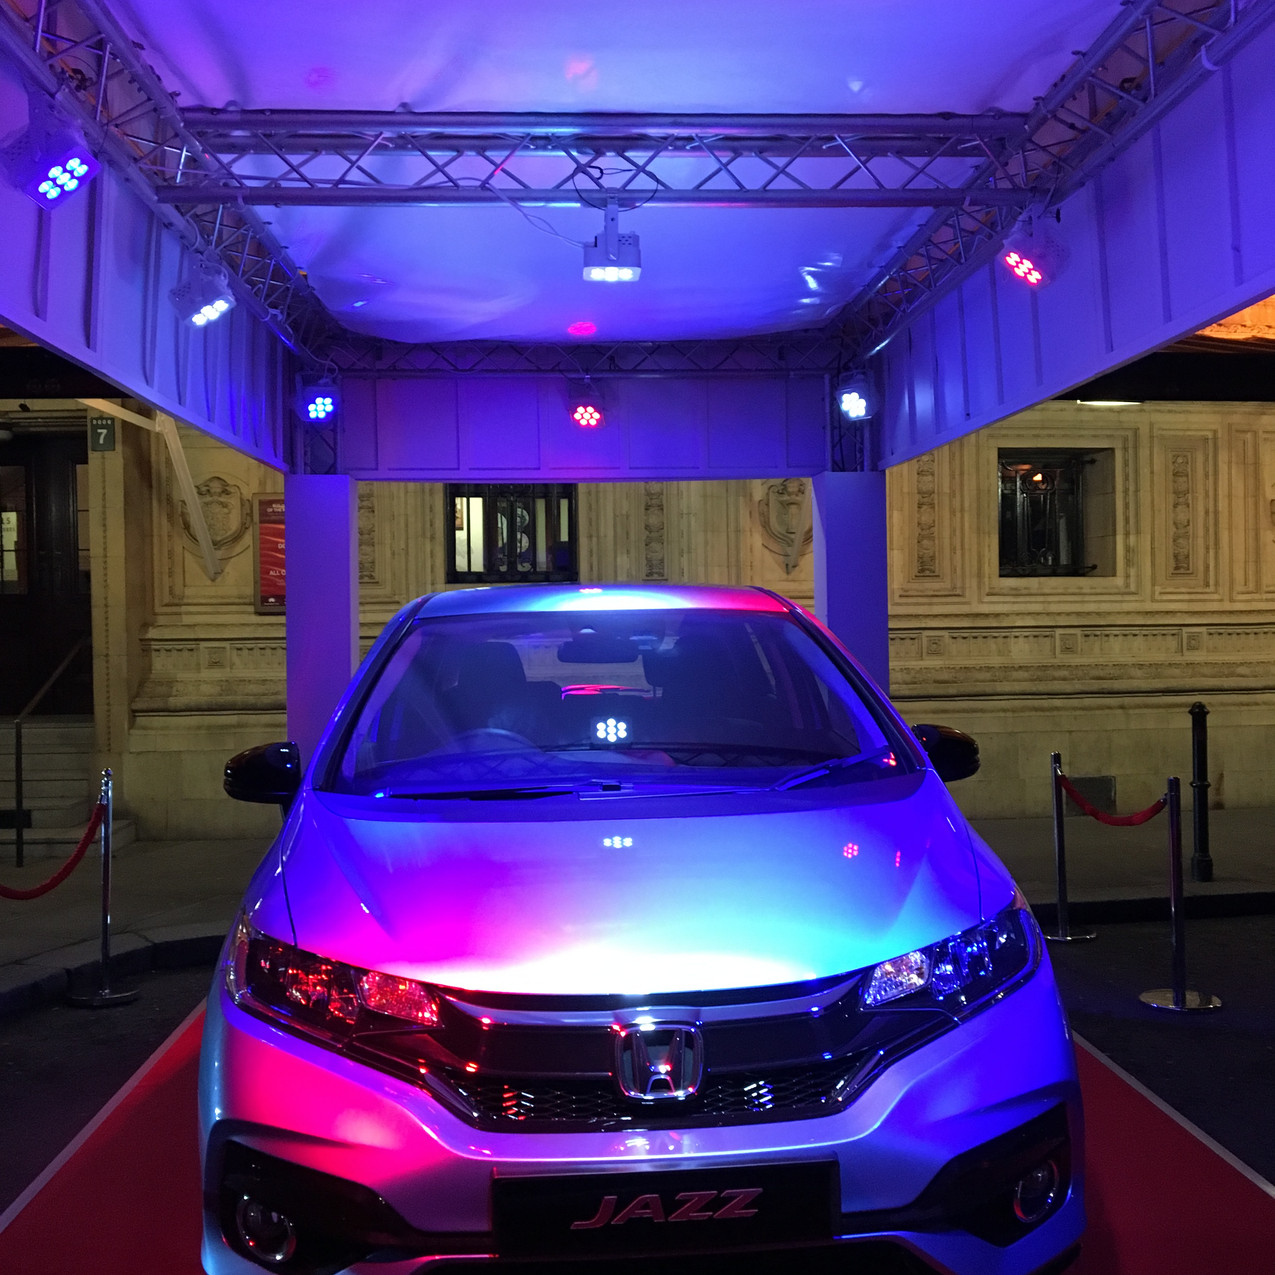 Honda Jazz Albert Hall